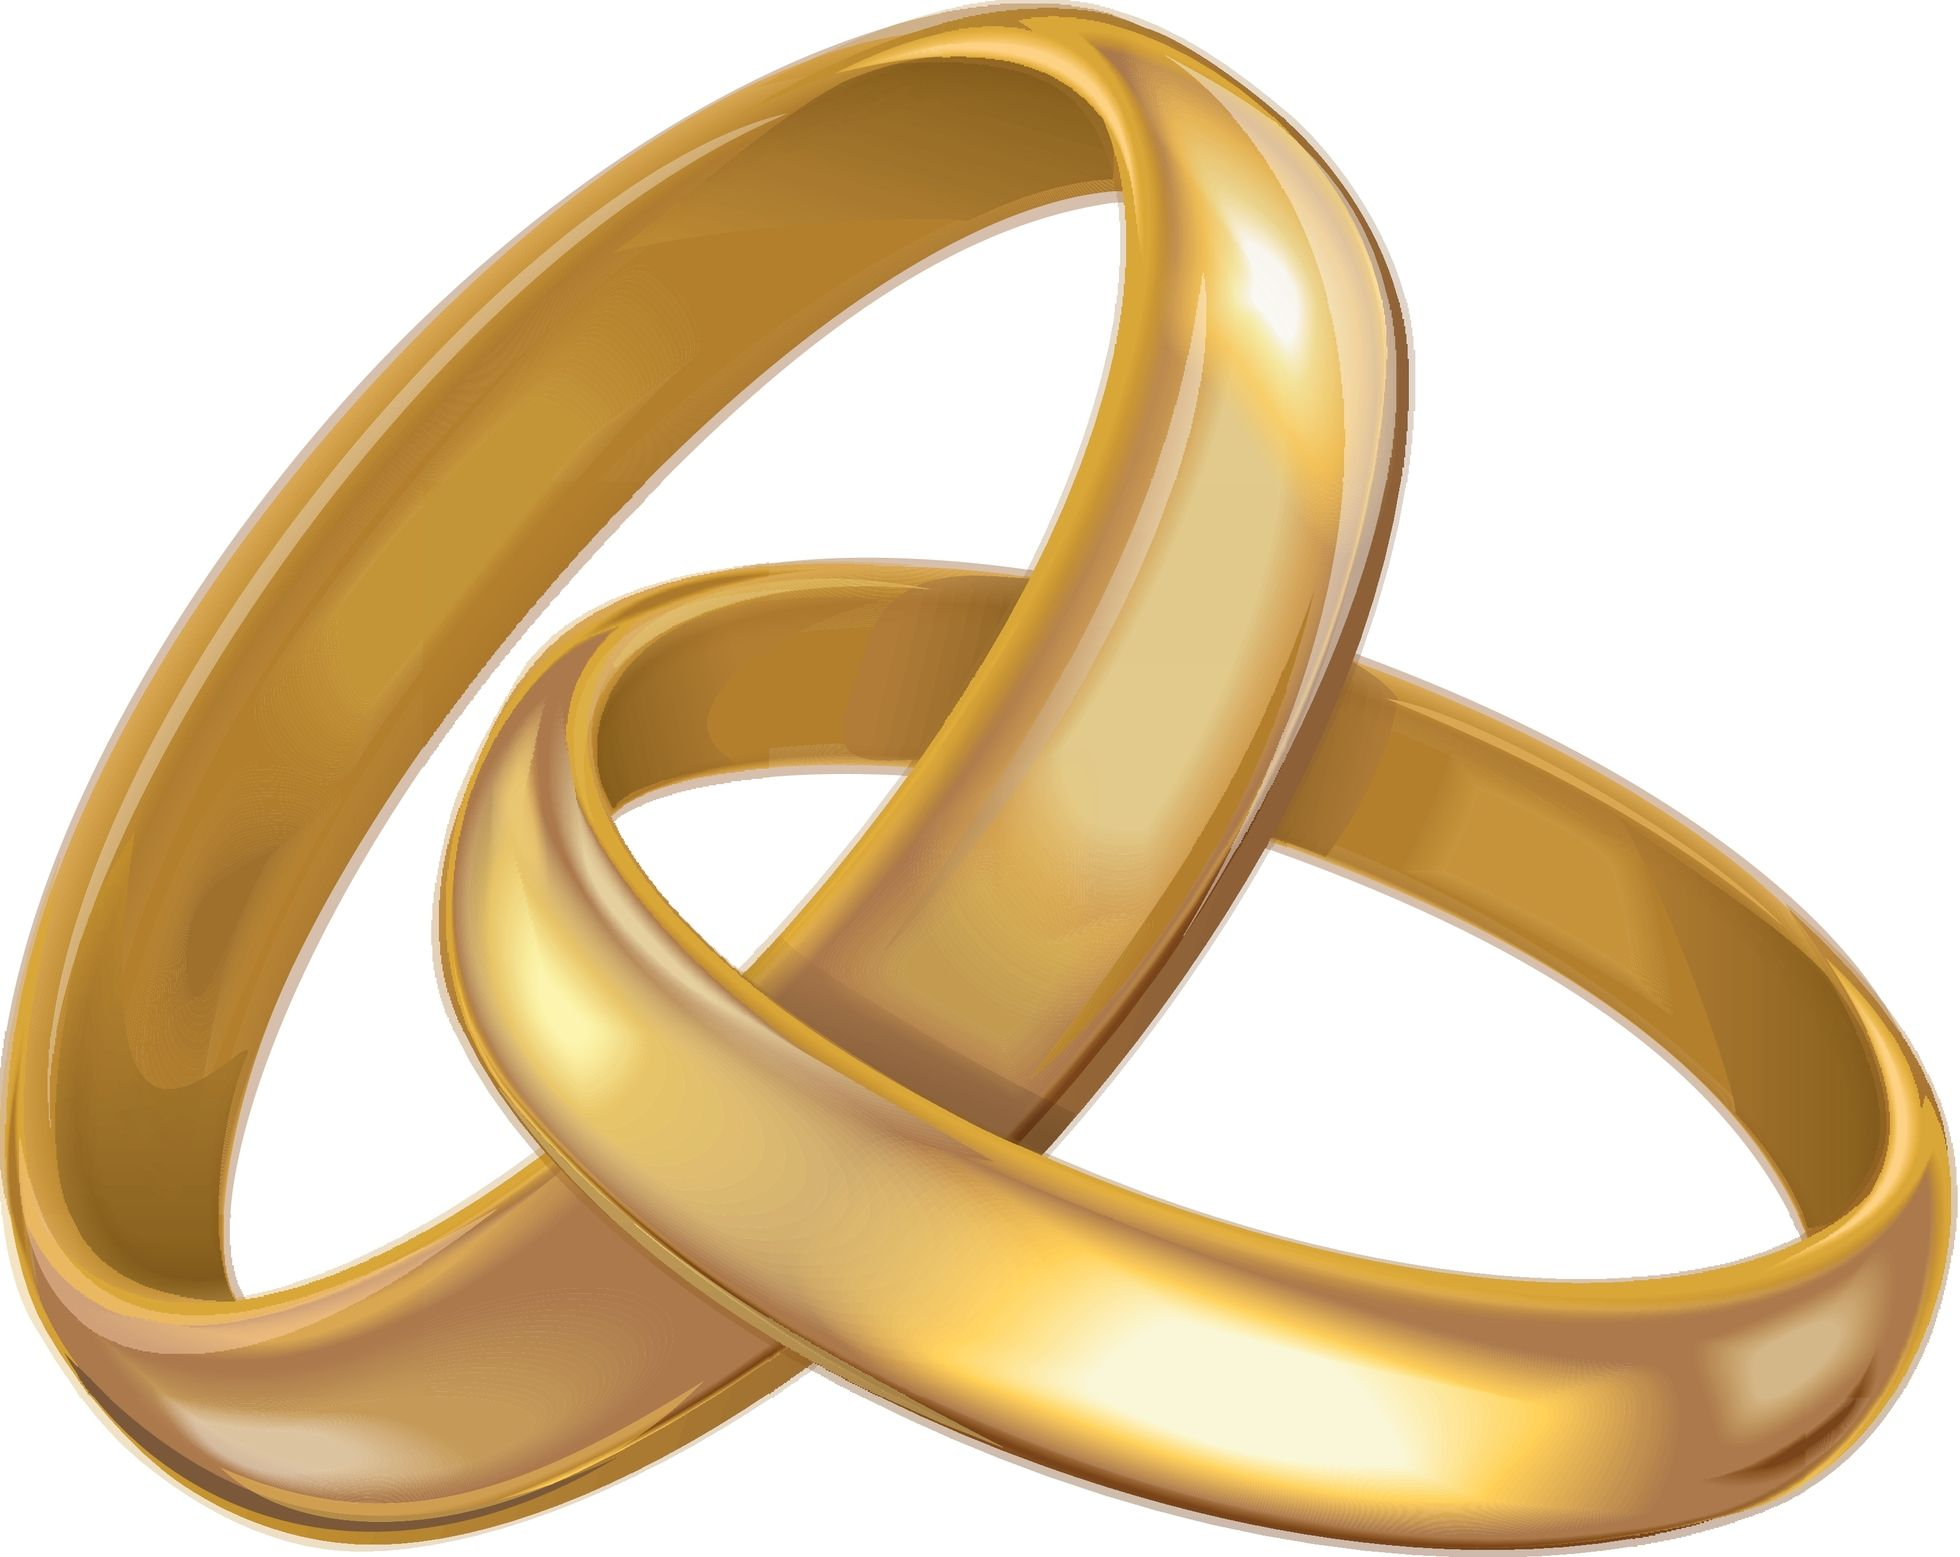 hight resolution of wedding rings clipart with wedding ring clip art wedding wedding rings clipart